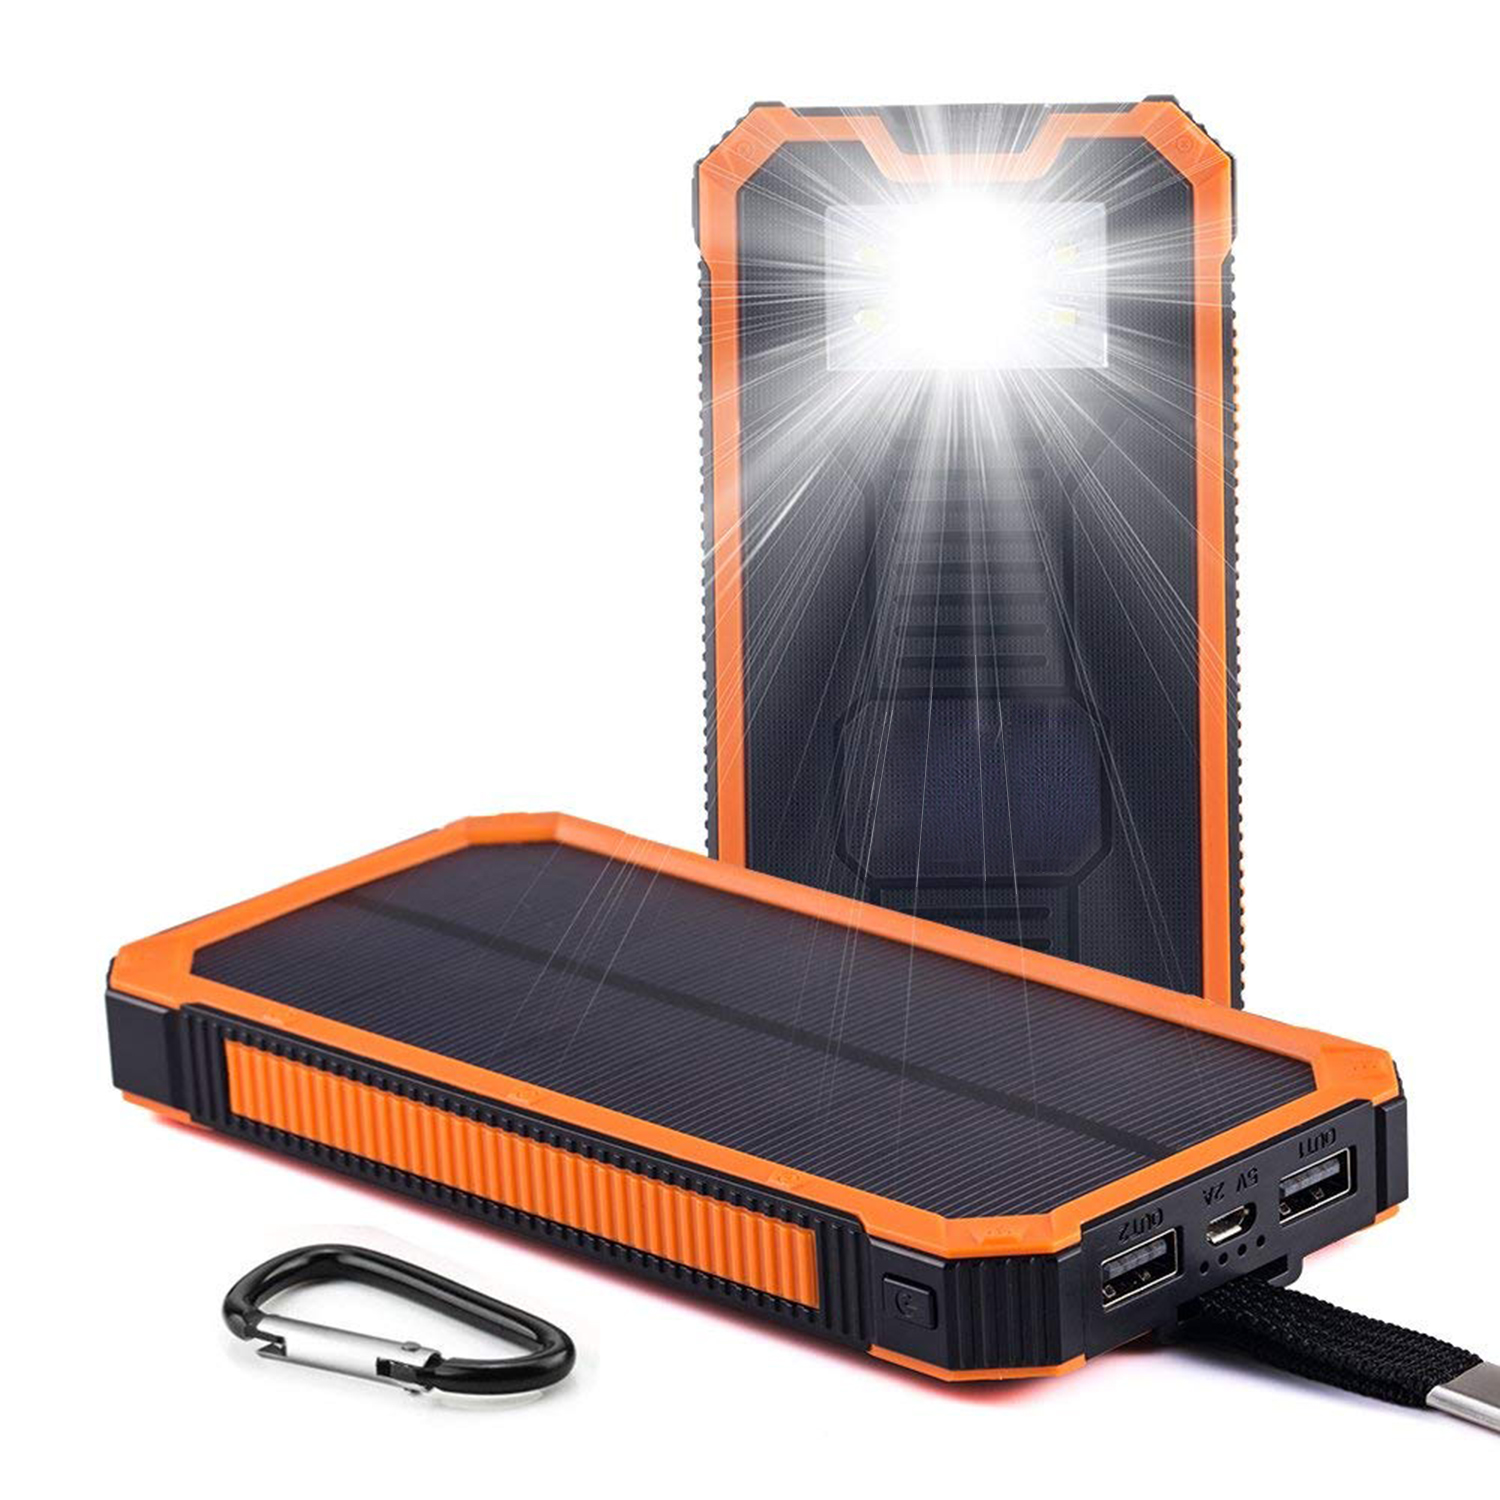 Solar Chargers 30000mAh,Portable Dual USB Solar Battery Fast Charger External Battery Pack, Solar Phone Charger Power Bank with 6LED Flashlight for Smartphones Tablet Camera Orange